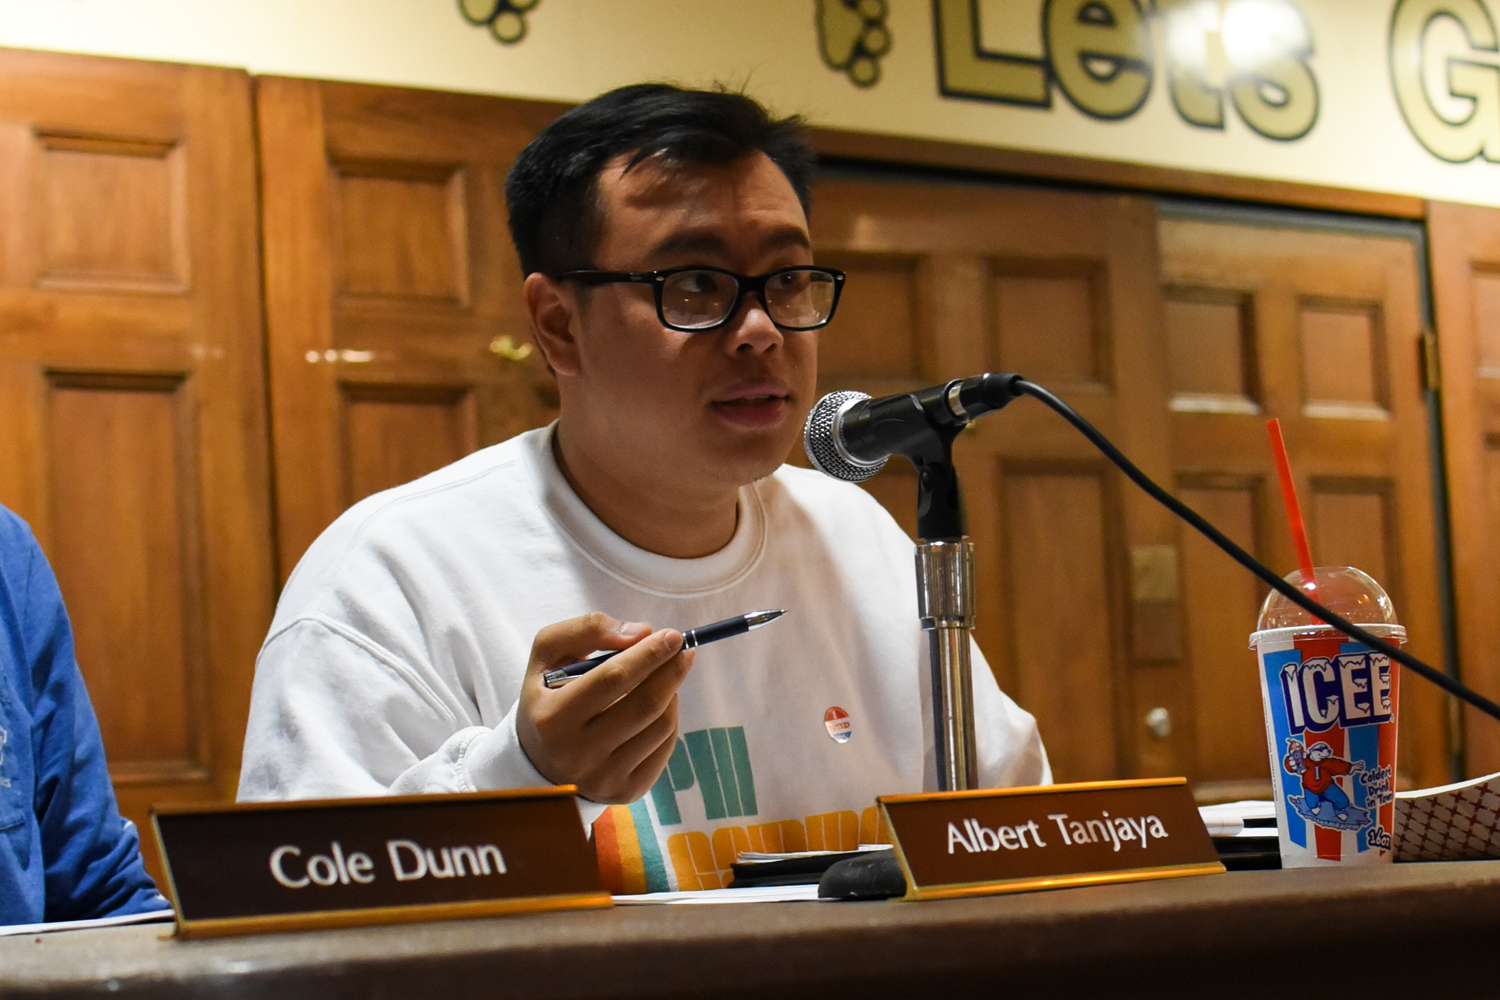 Board member Albert Tanjaya discusses the possibility of adding needle disposal containers to restrooms on campus.